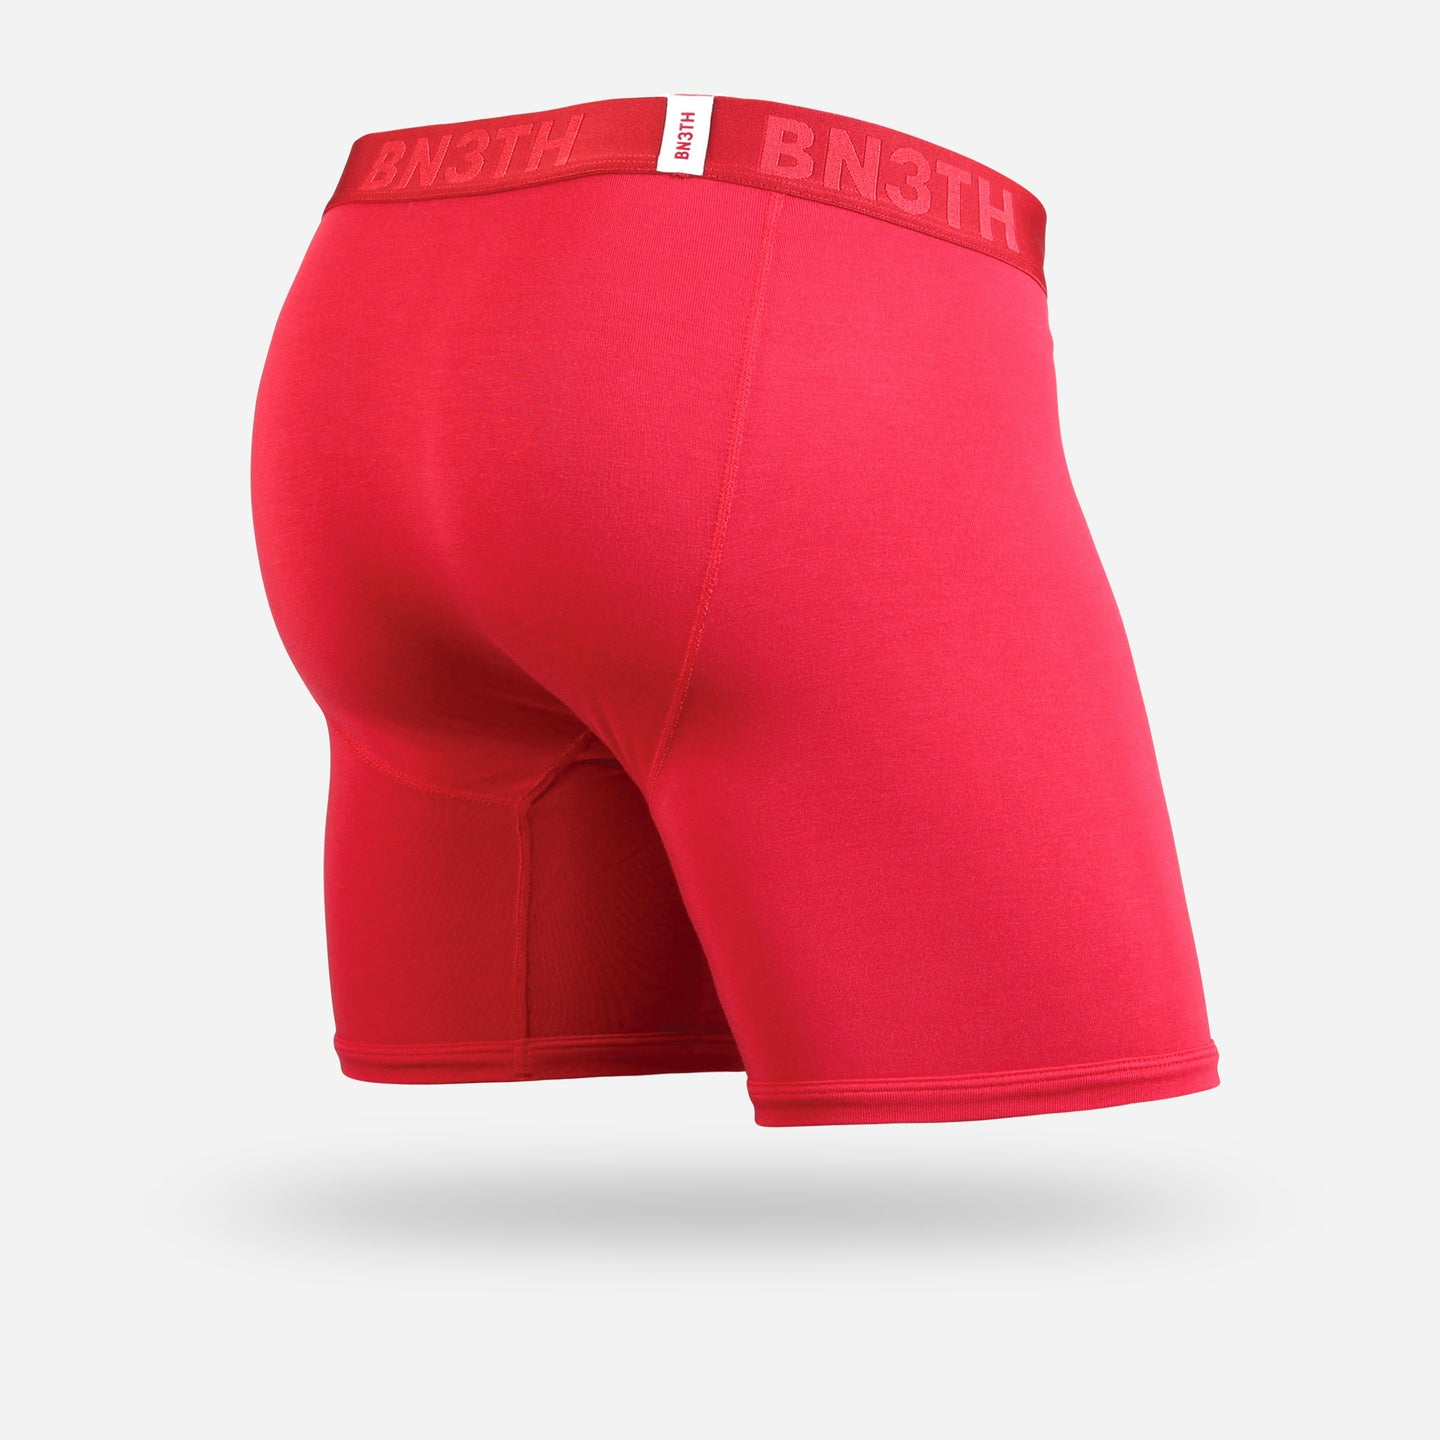 CLASSICS BOXER BRIEF: CRIMSON